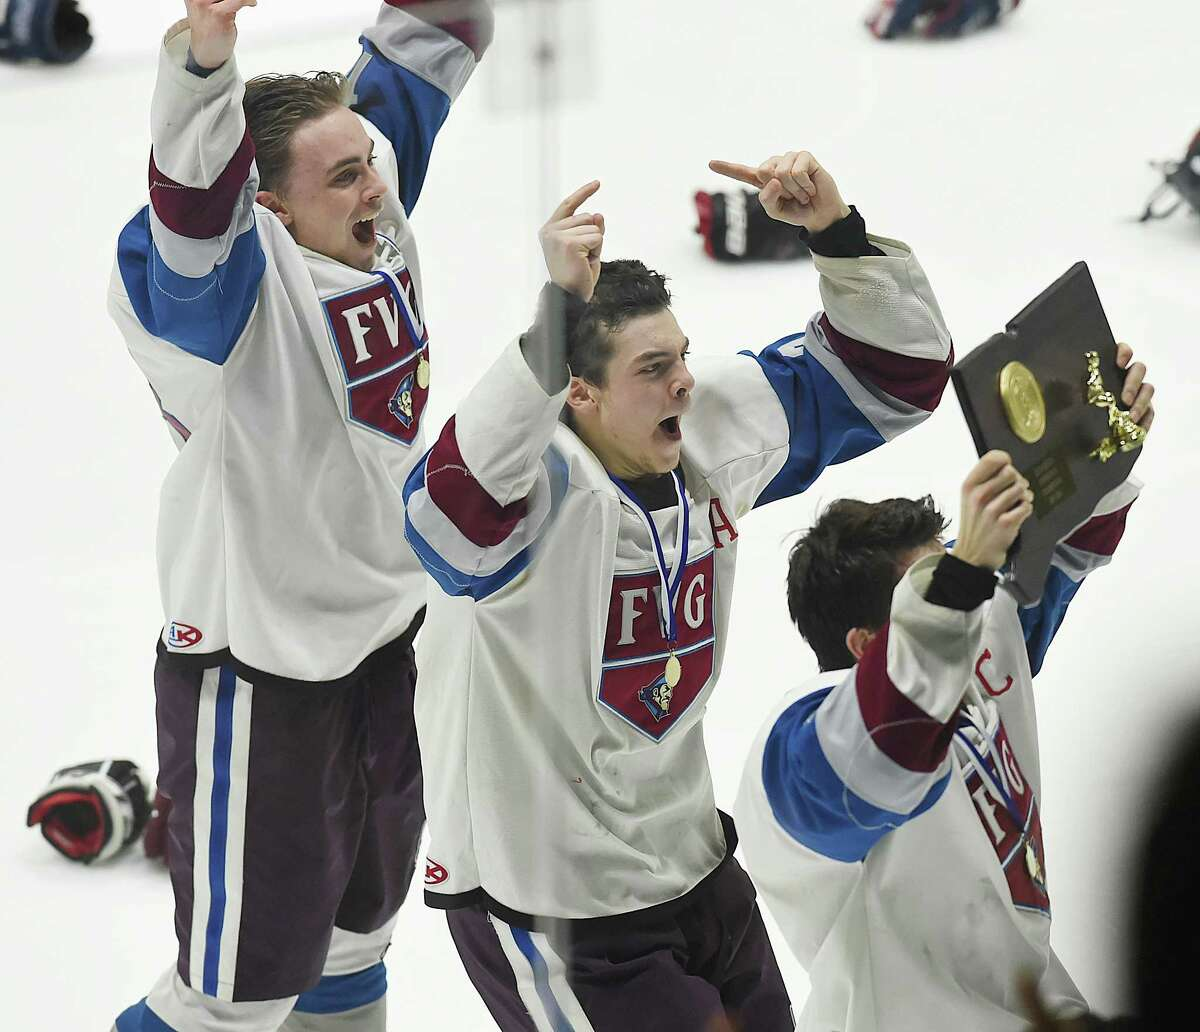 Farmington Valley defeats Guilford, 7-3 in the CIAC Division II state ice hockey championship, March 16, 2018, at Ingalls Rink in New Haven.